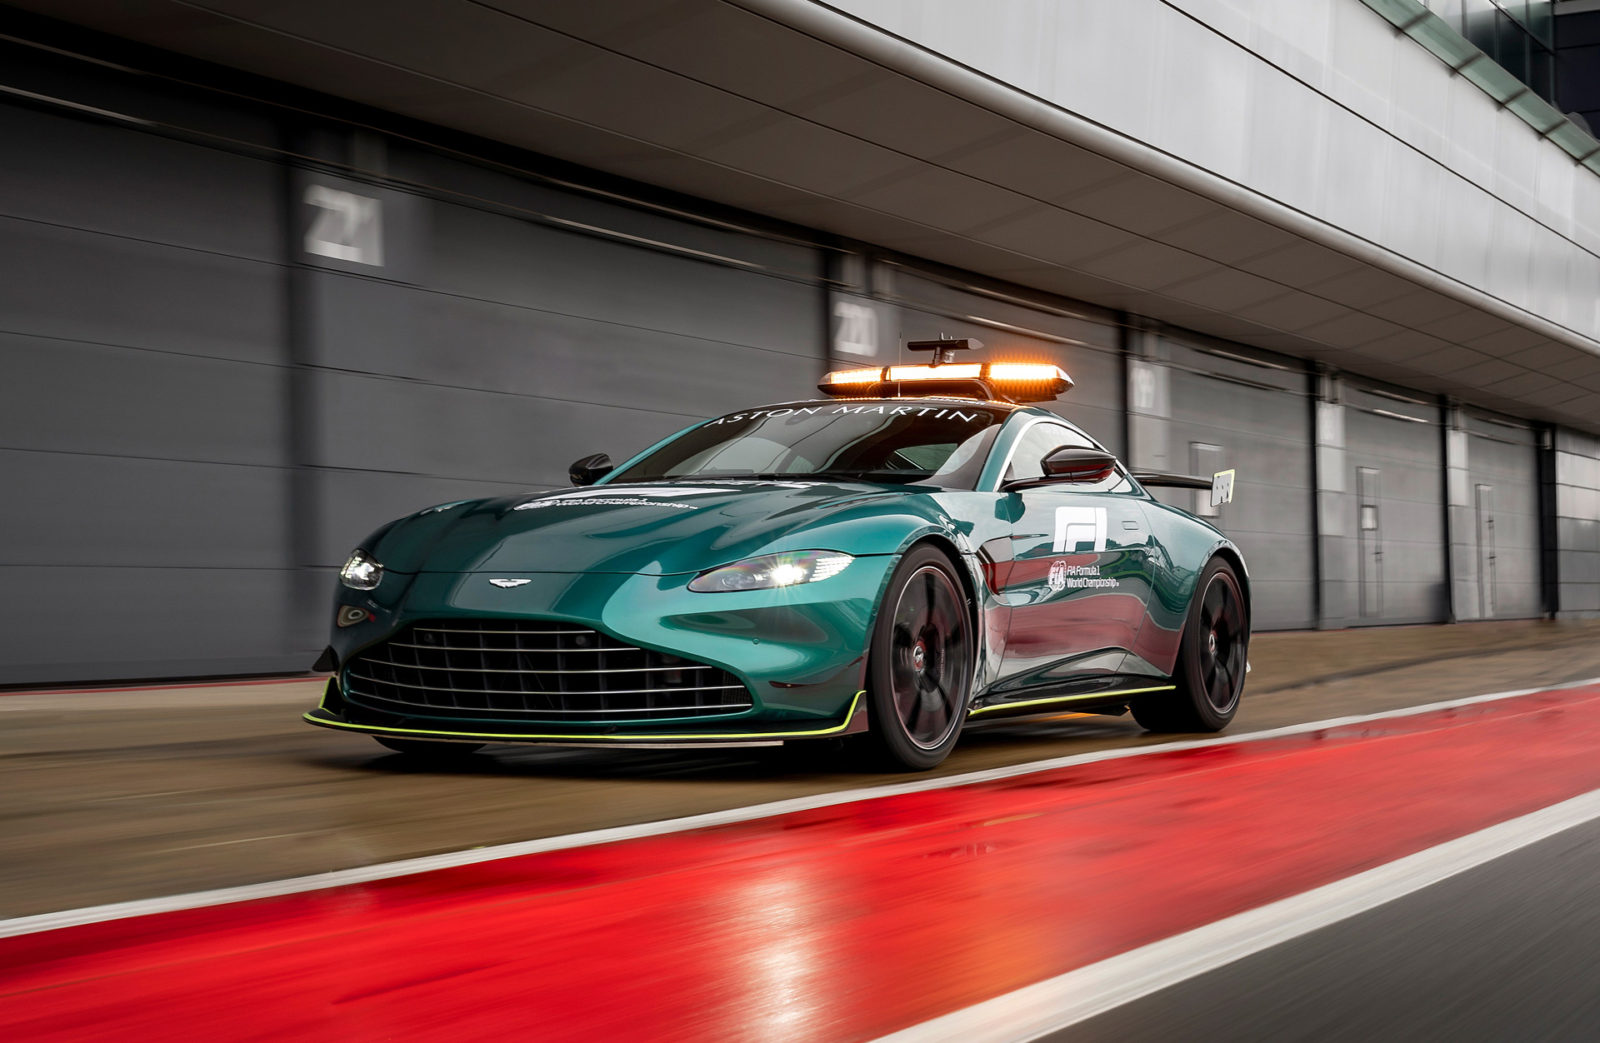 upgraded-aston-martin-vantage-joins-mercedes-benz-amg-gt-as-2021-f1-safety-car